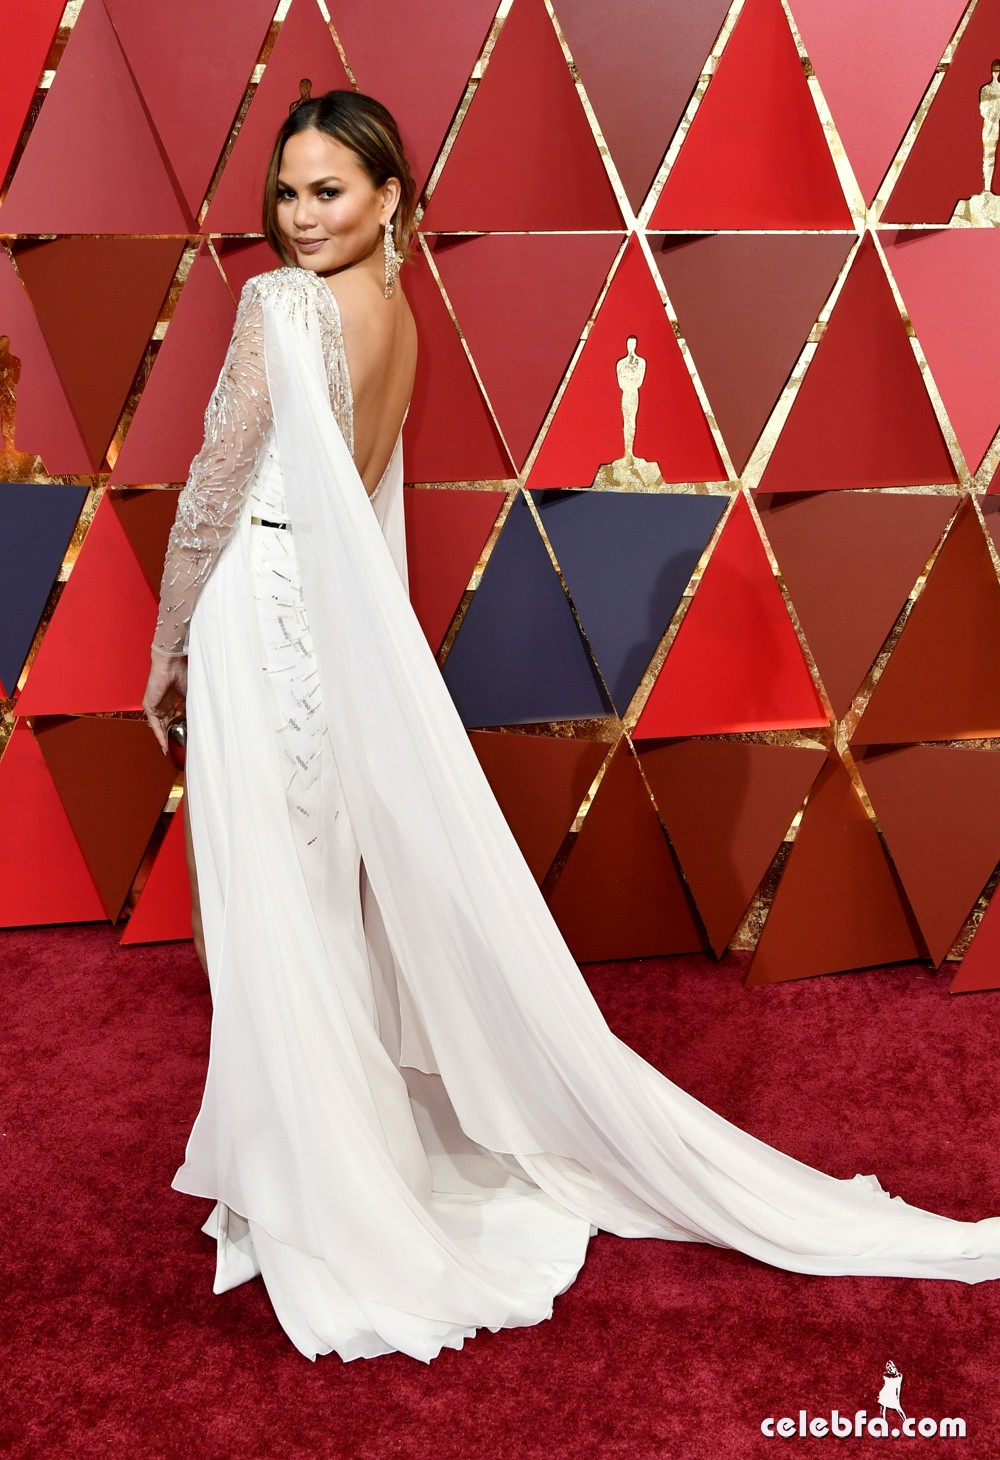 Mandatory Credit: Photo by Rob Latour/REX/Shutterstock (8434882cj) Chrissy Teigen 89th Annual Academy Awards, Arrivals, Los Angeles, USA - 26 Feb 2017